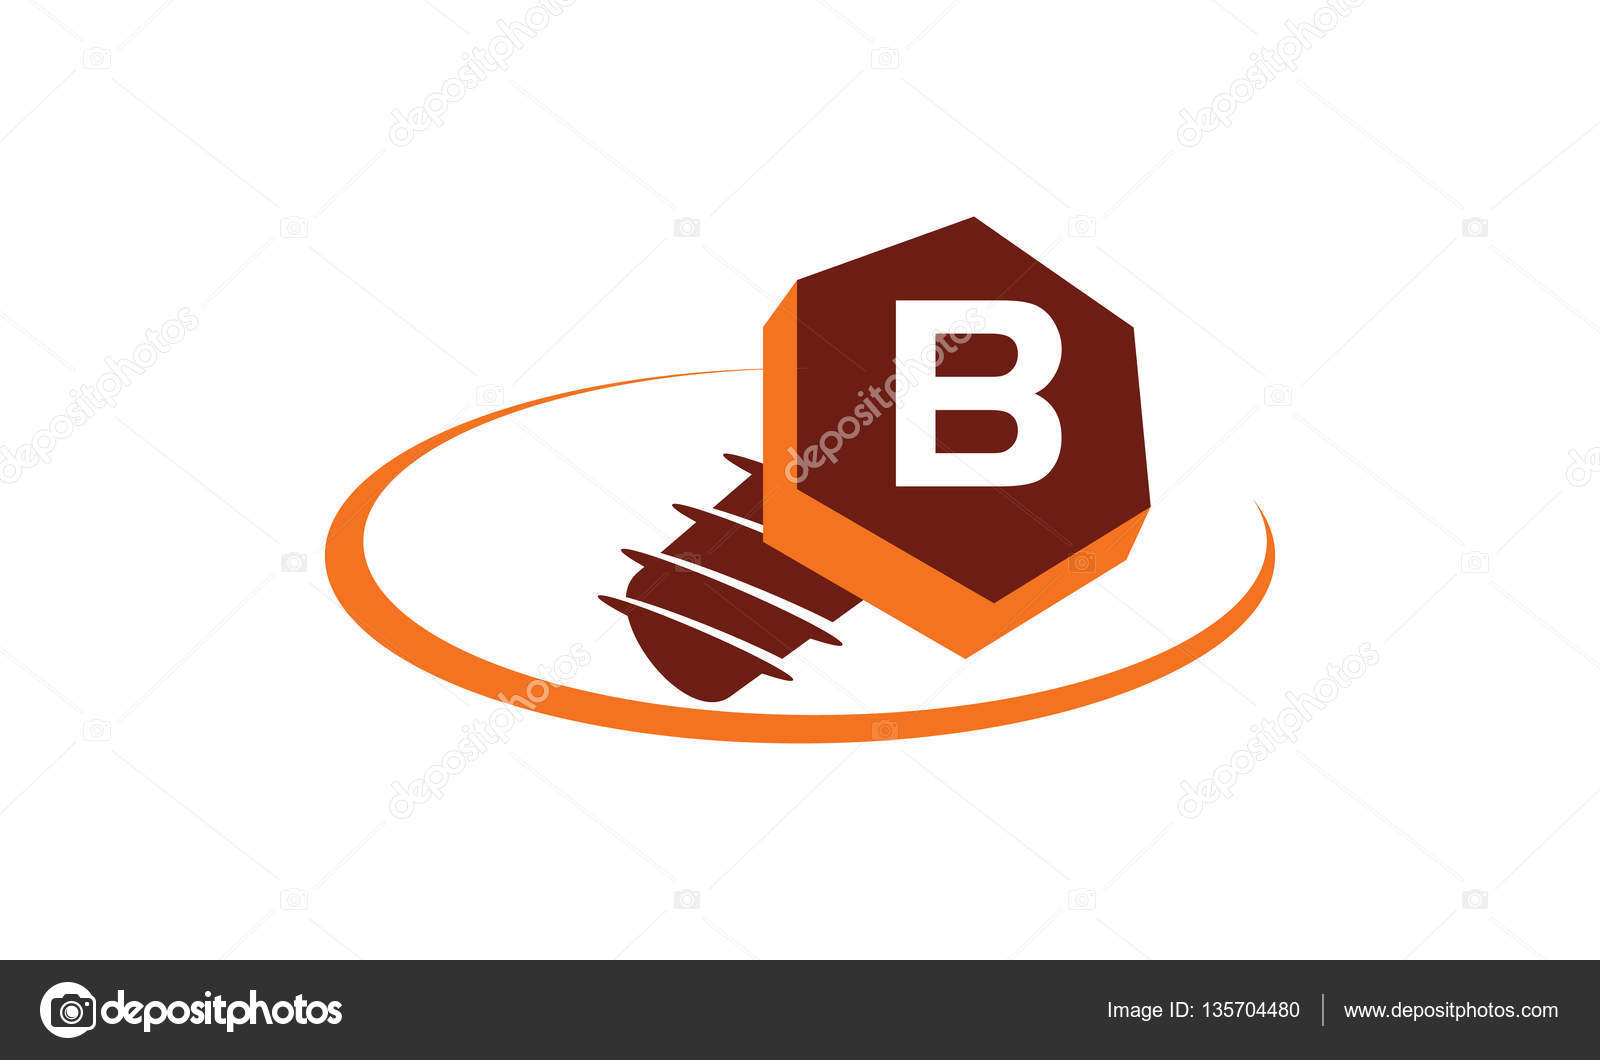 B Stock Solutions industrial solutions initial b — stock vector © alluranet